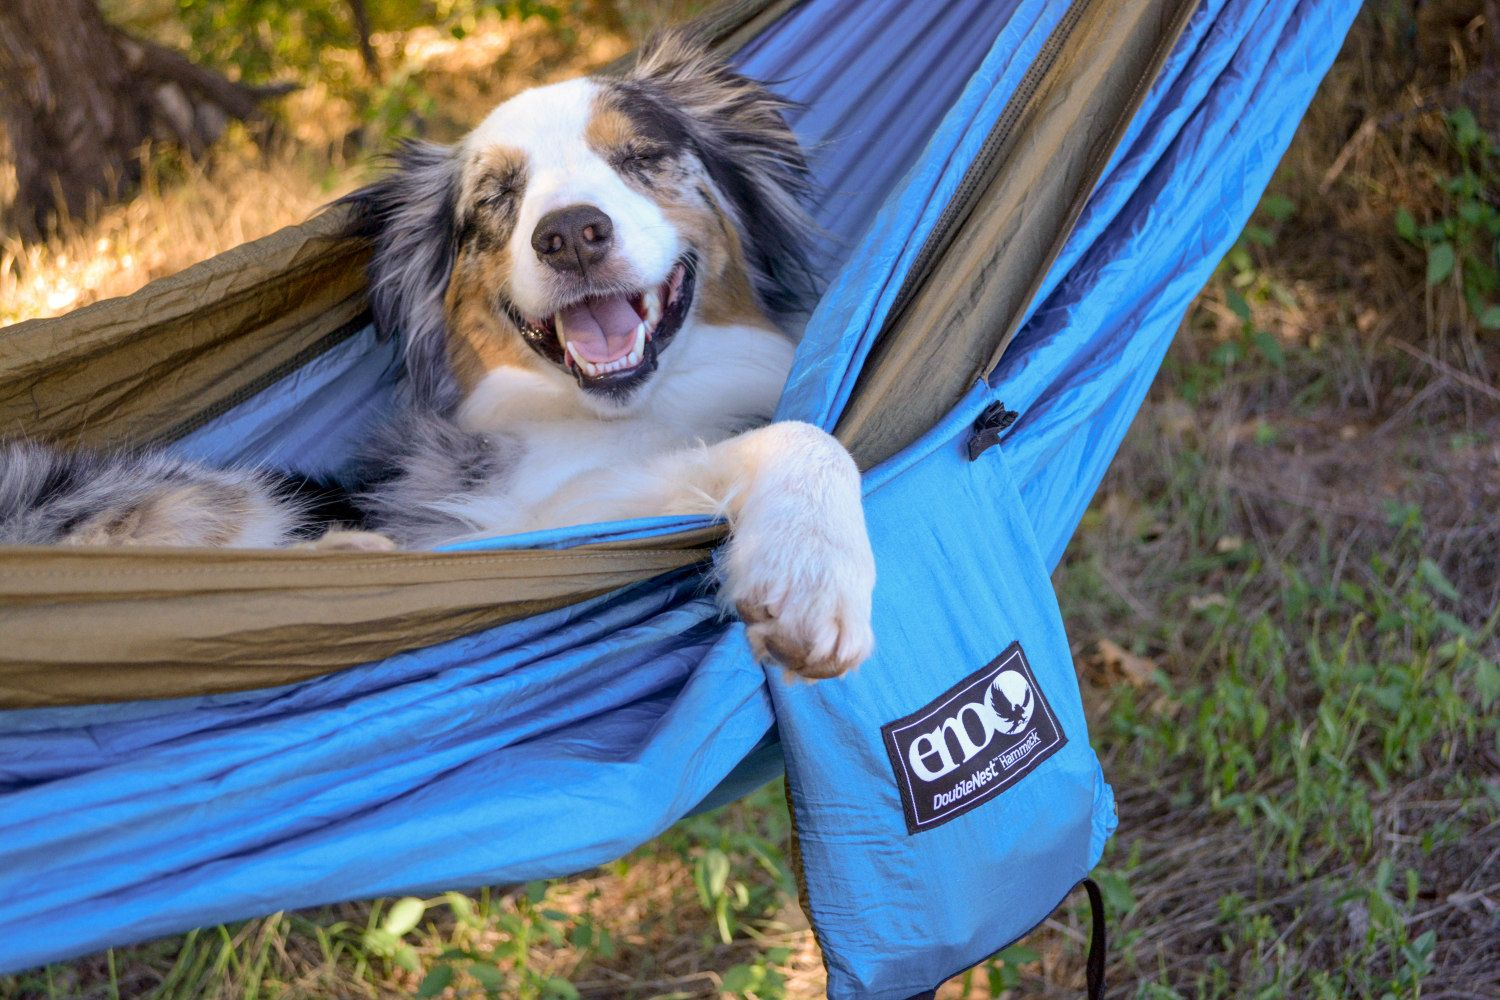 dog lounge doubl bath products kh on beyond original cov cot chaise hammock sarafi pet outdoor replacement bed